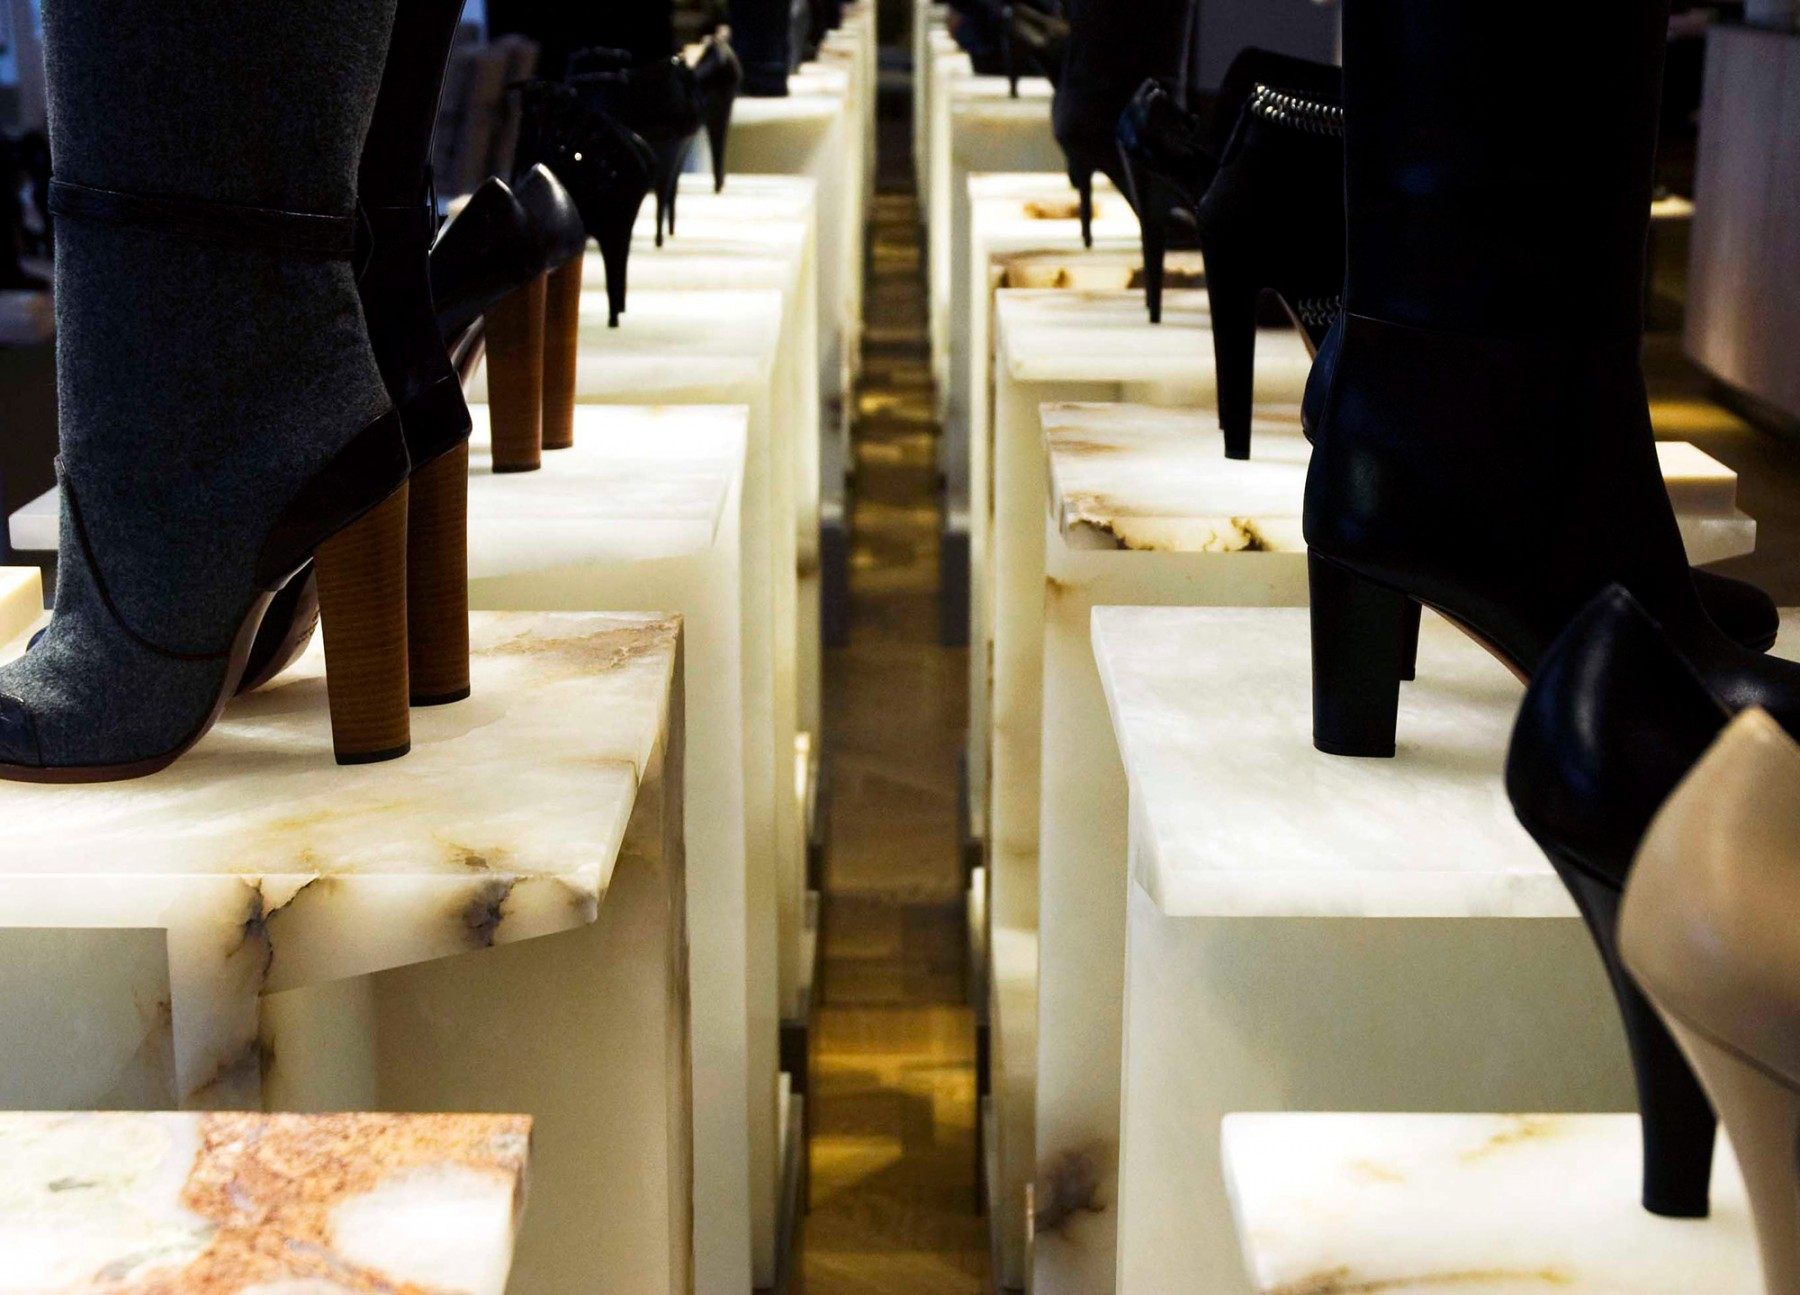 Selfridges-London-designer-fashion-retail-Jamie-Fobert-Architects-shoe-galleries-alabaster-plinths-4